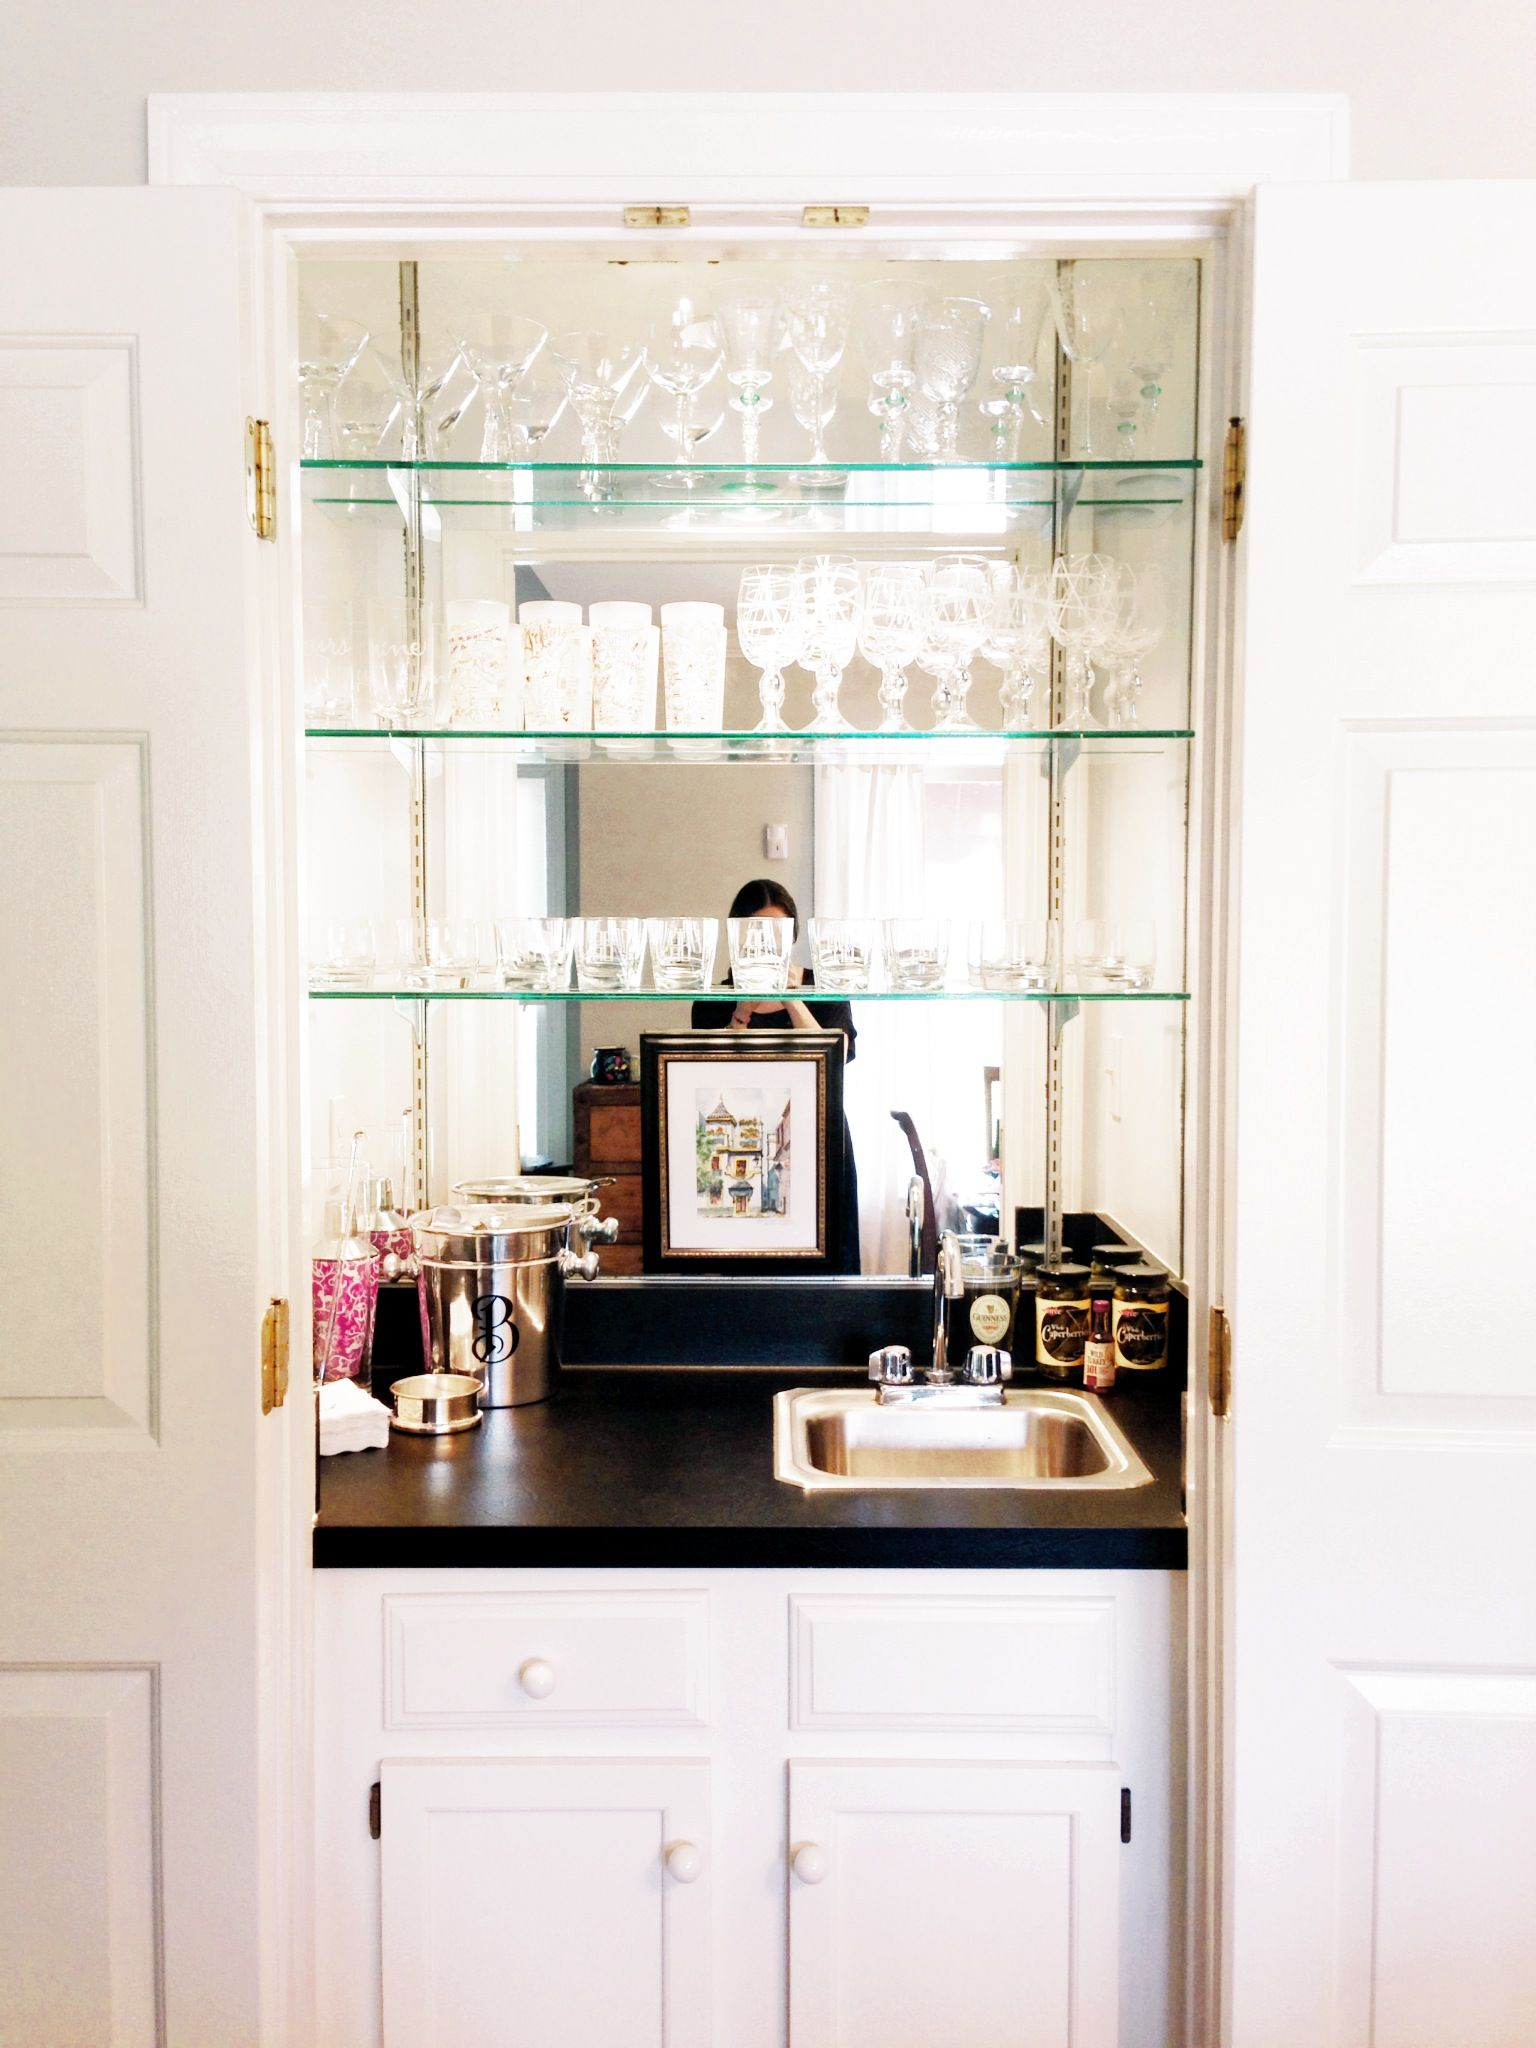 Two Ellie - Two Ellie: mirror backed, glass shelved wet bar | Home ...